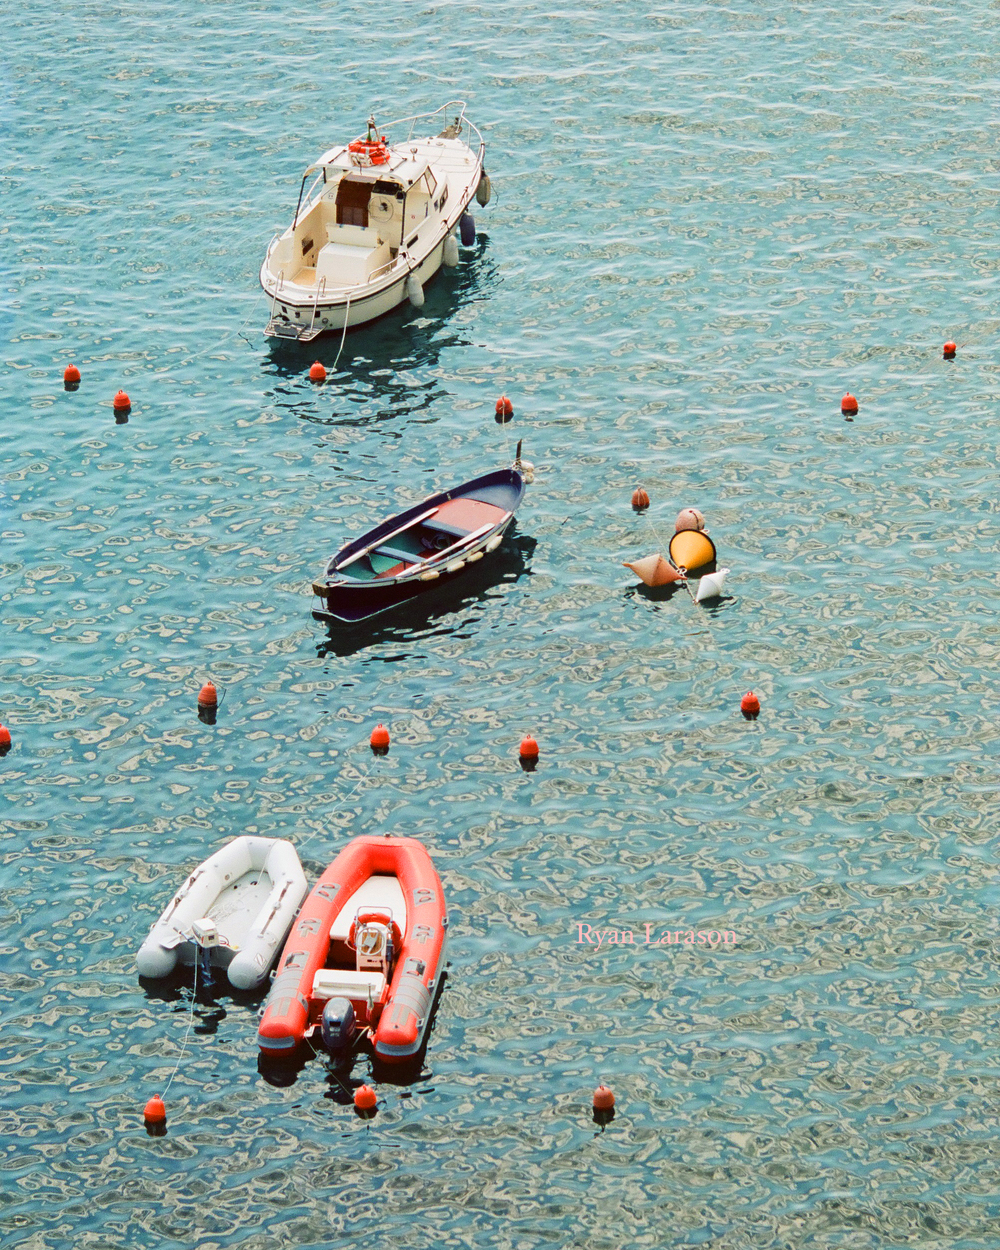 Boats on the Med 2_8x10_WM.jpg